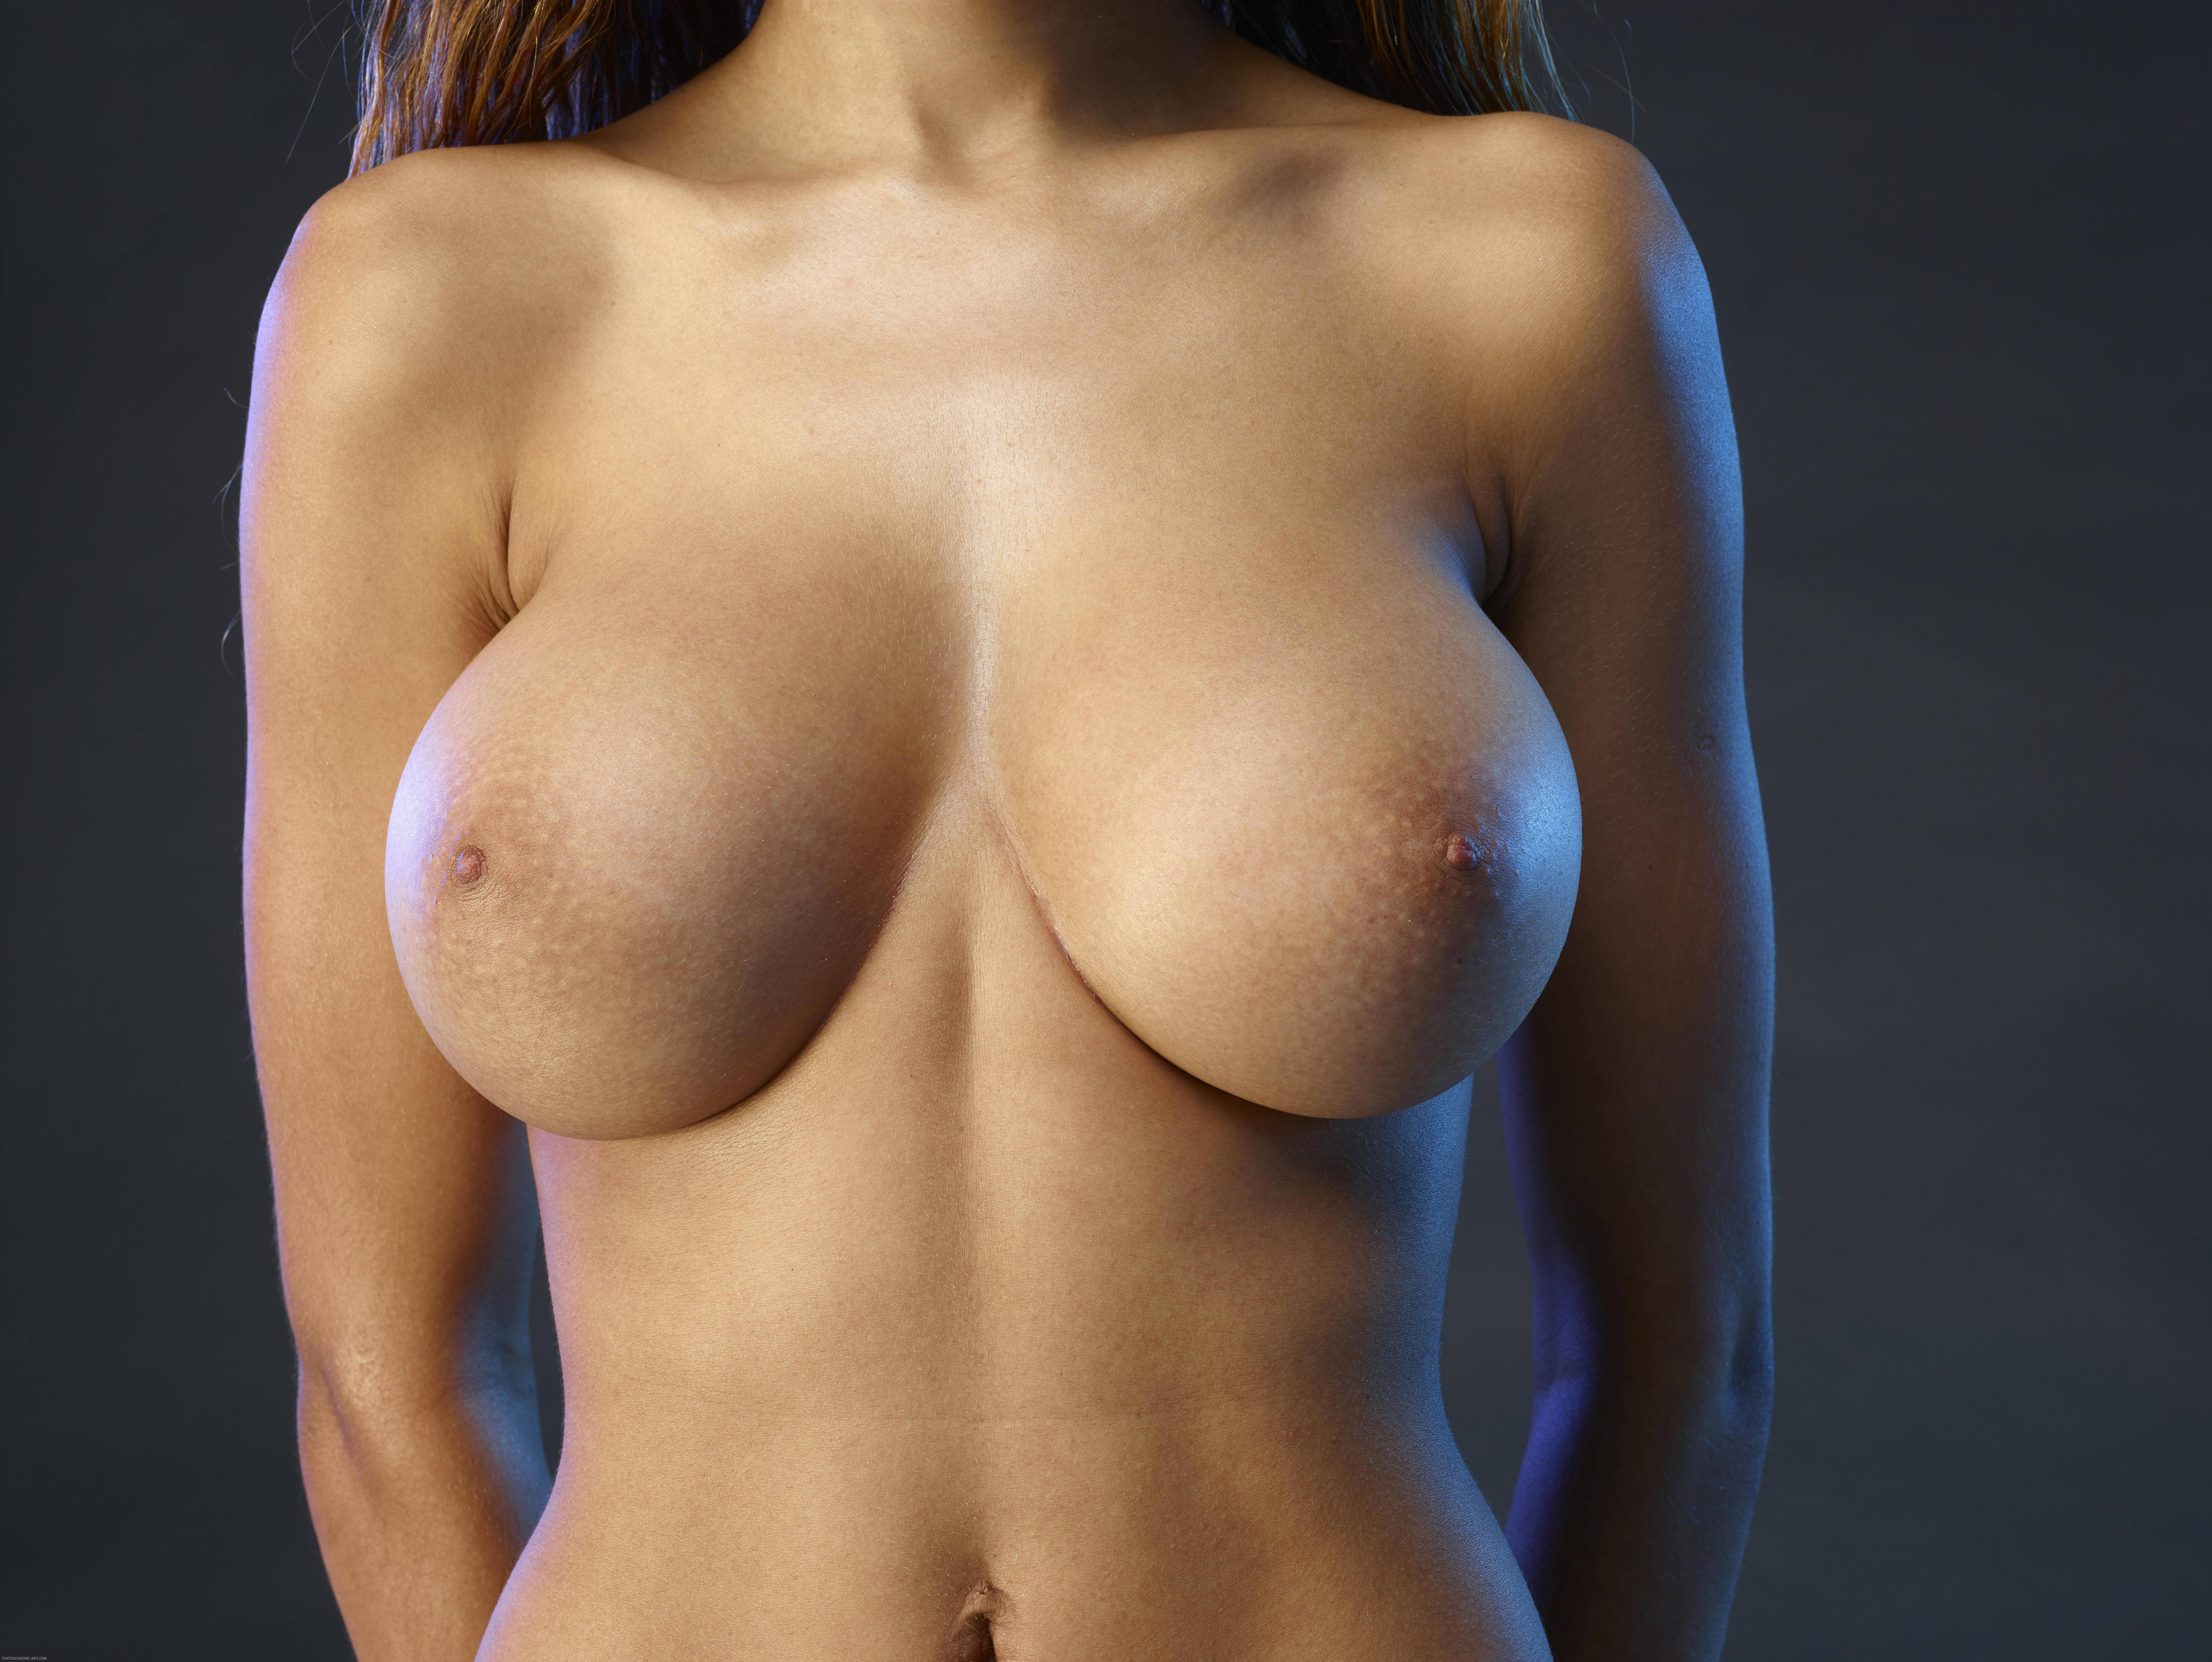 A Girl With Three Boobs Nude